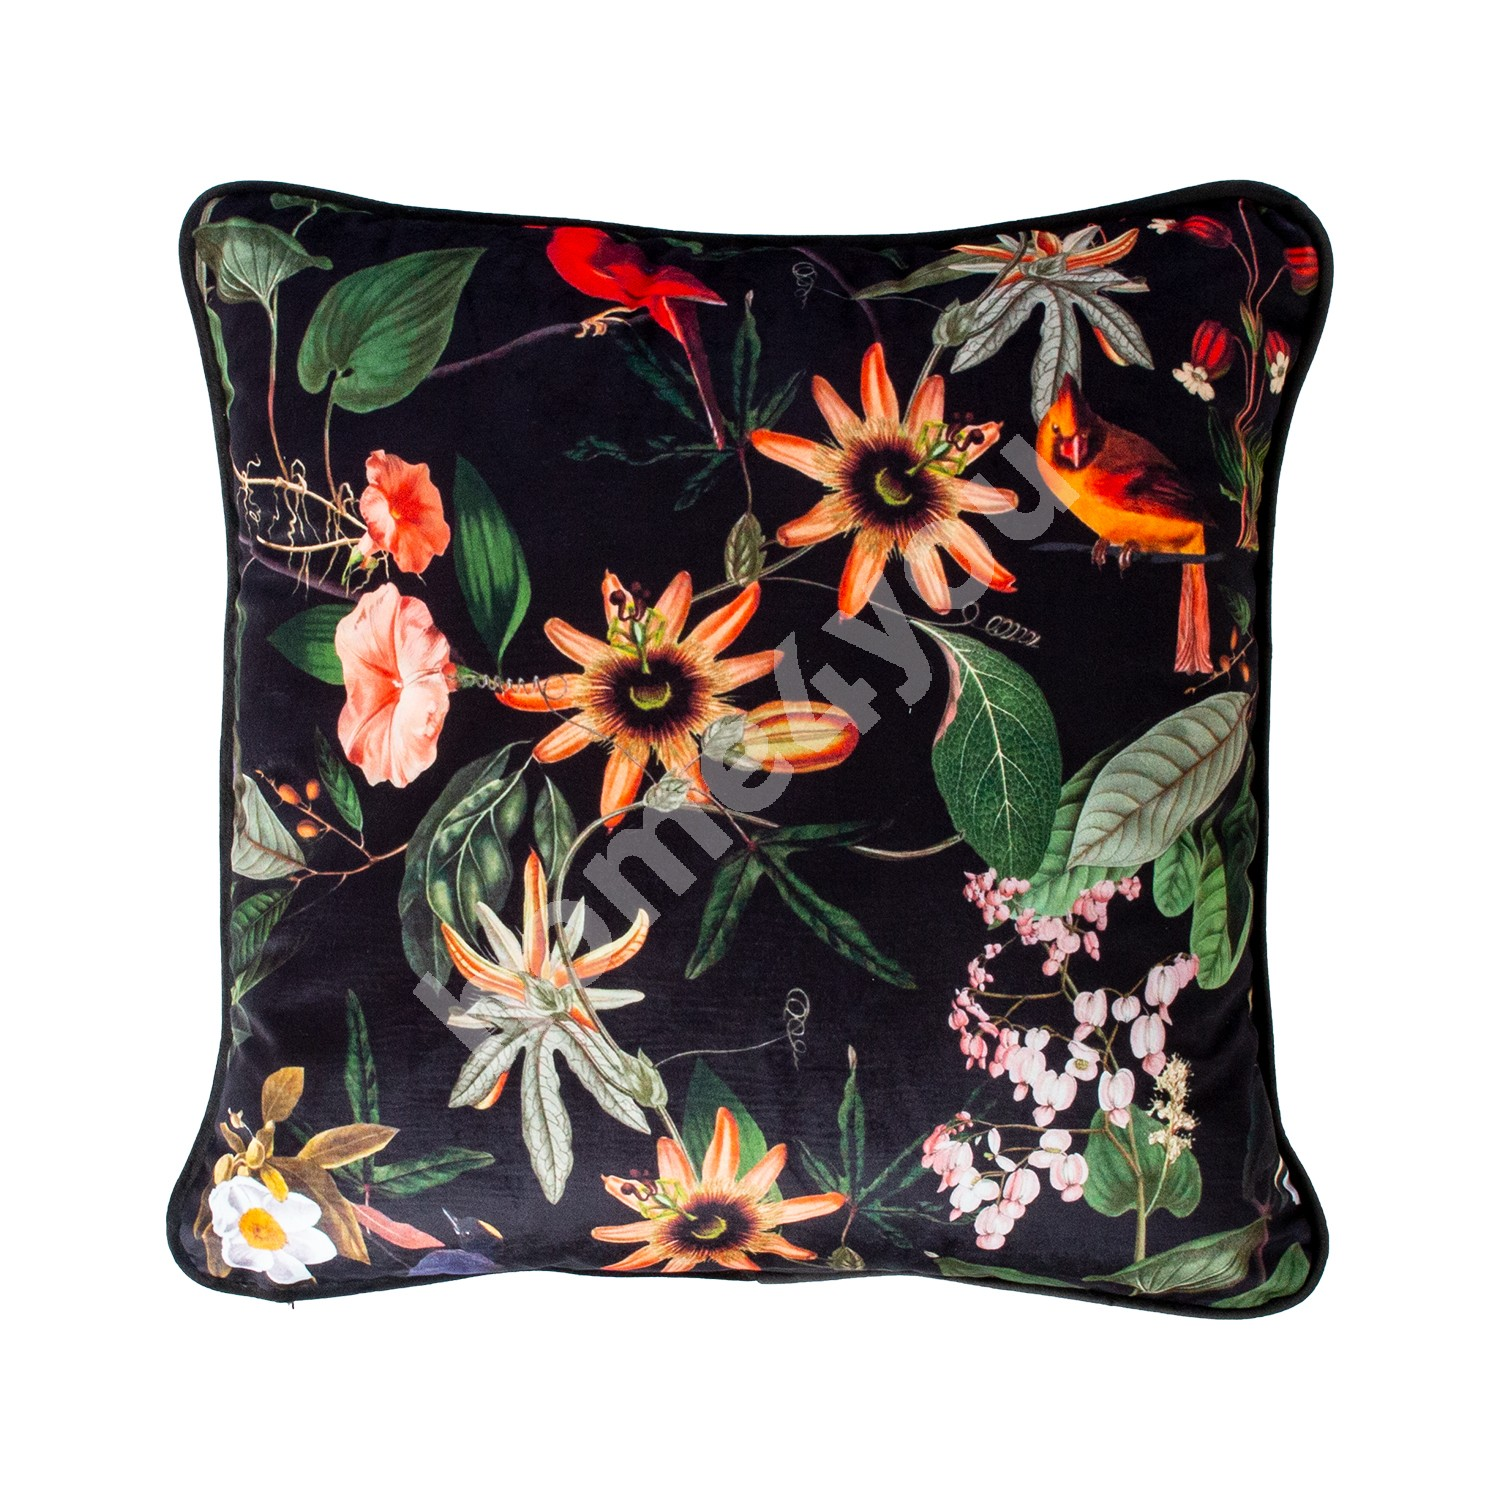 Pillow BLACK HOLLY 45x45cm, flowers on a black background